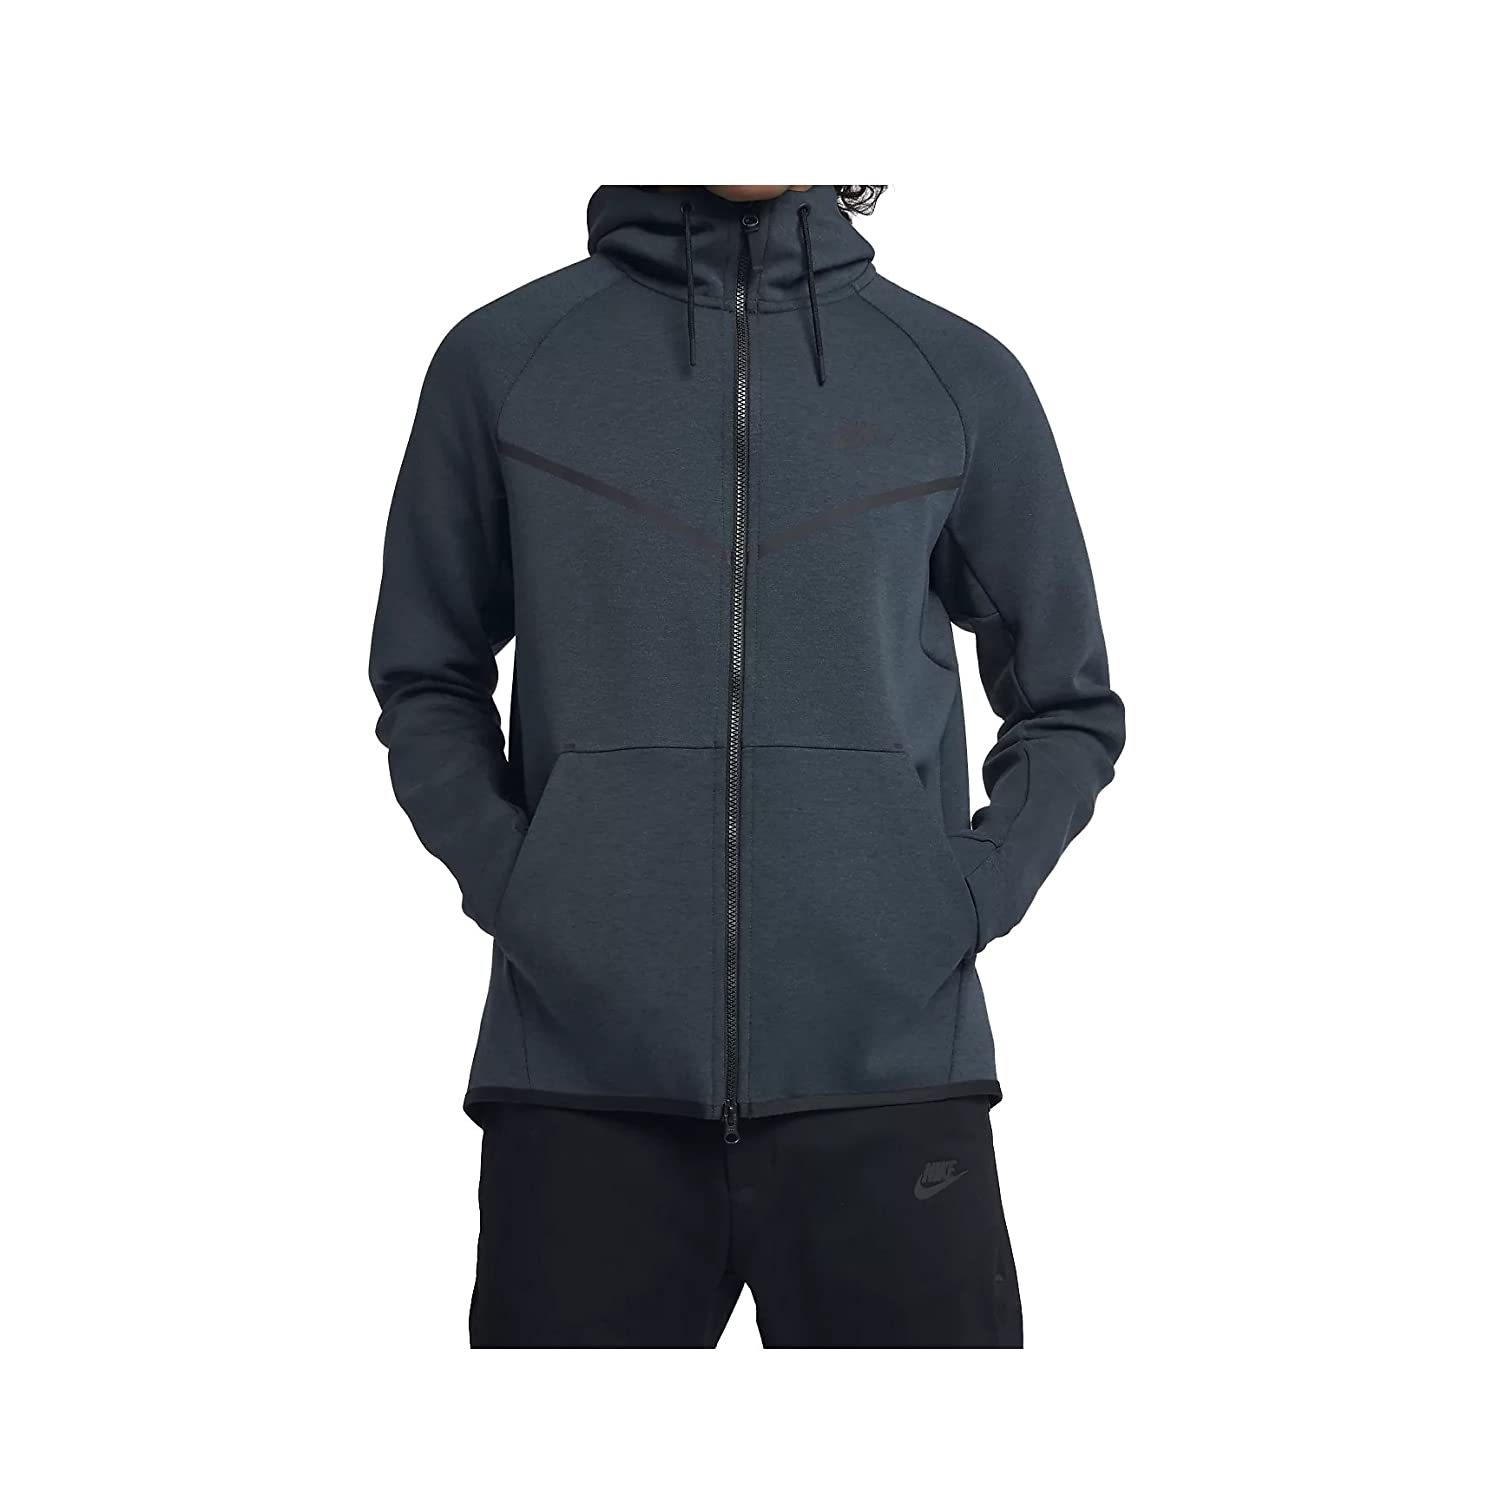 8bfaebeec9 Amazon.com  Men s Nike Sportswear Windrunner Jacket  NIKE  Clothing